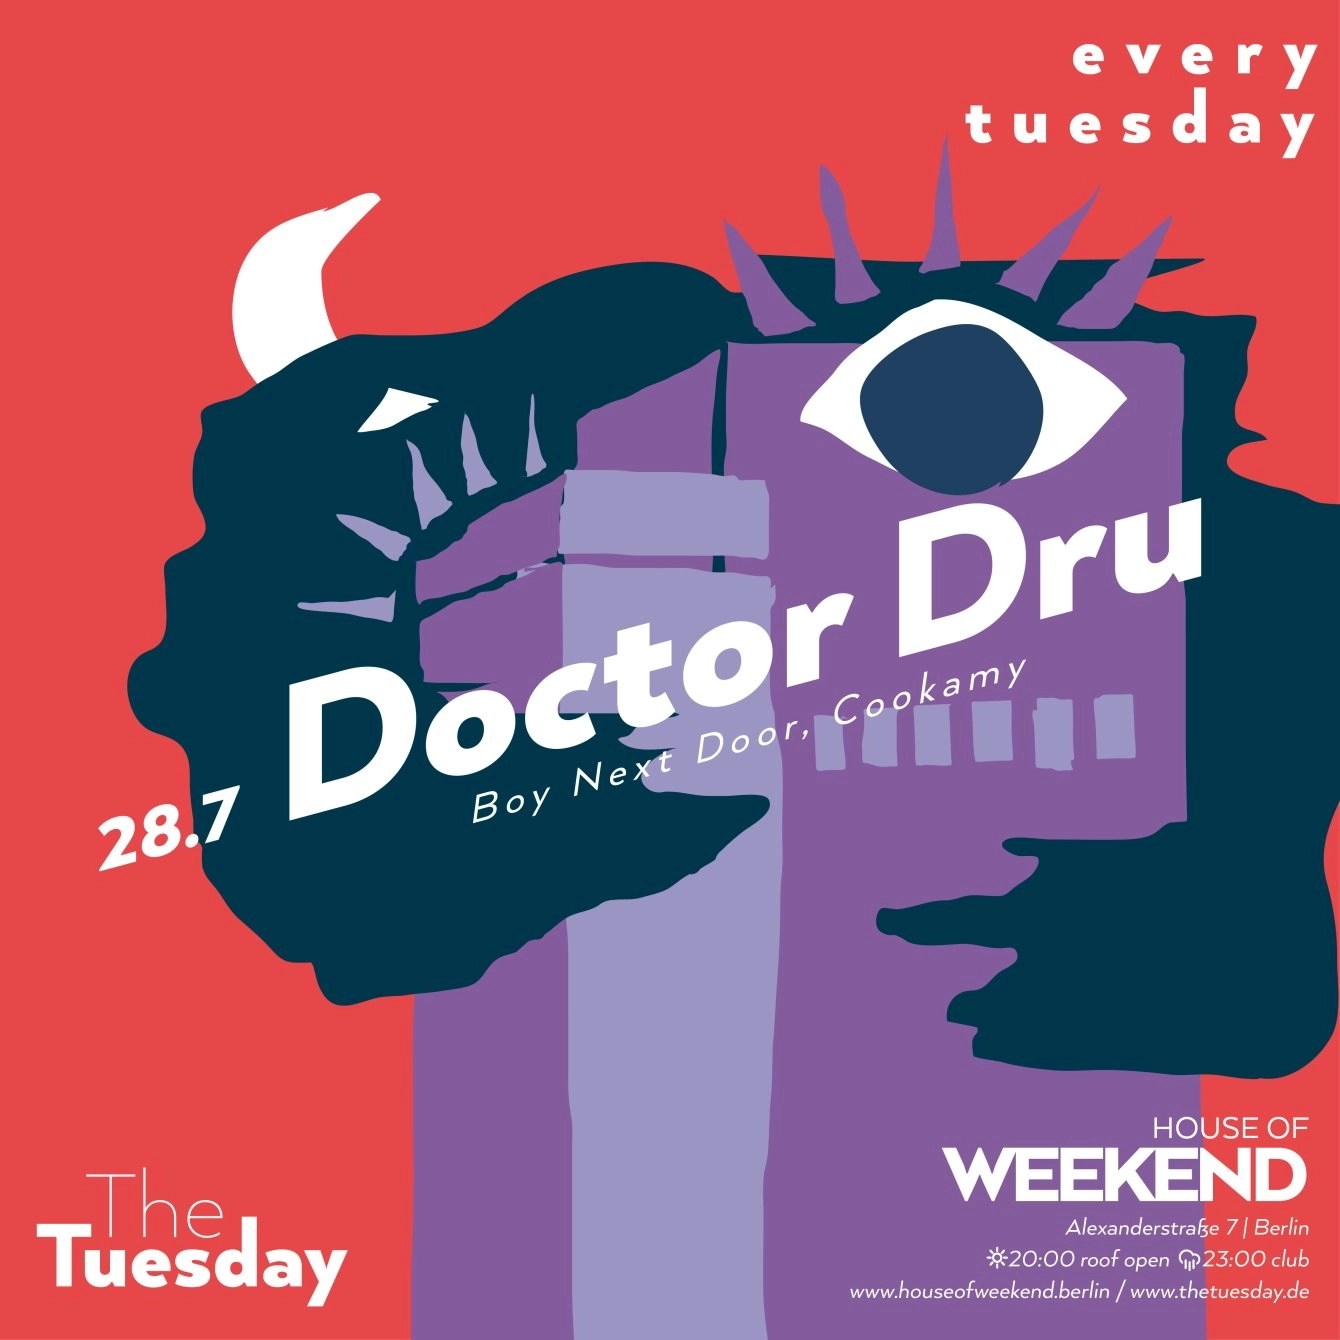 House Doctor Berlin Ra The Tuesday With Doctor Dru More Rooftop Club At